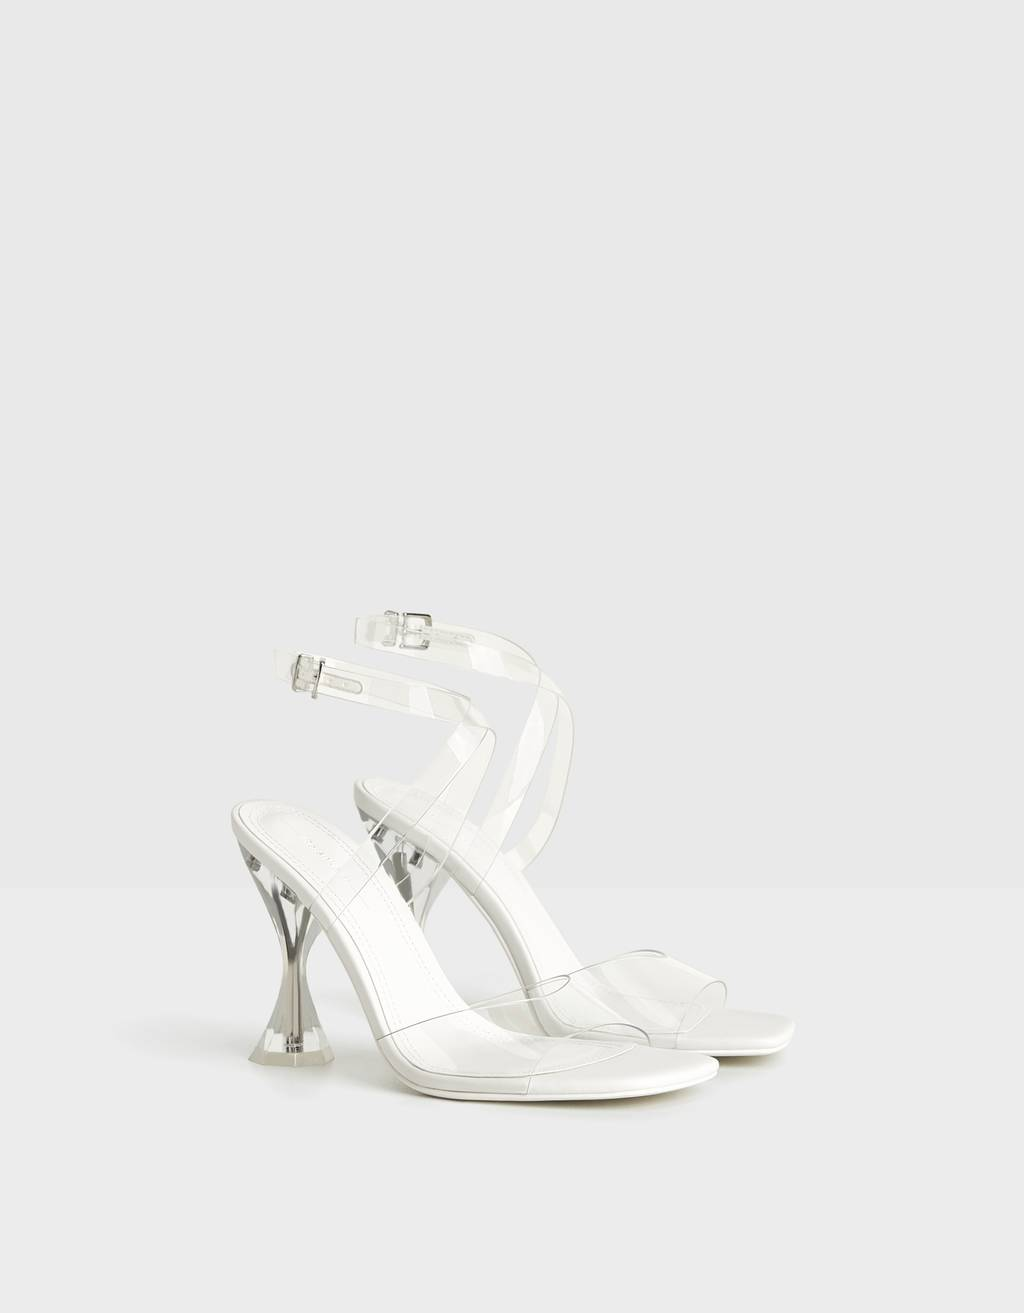 High-heel sandals with vinyl straps and methacrylate heels.